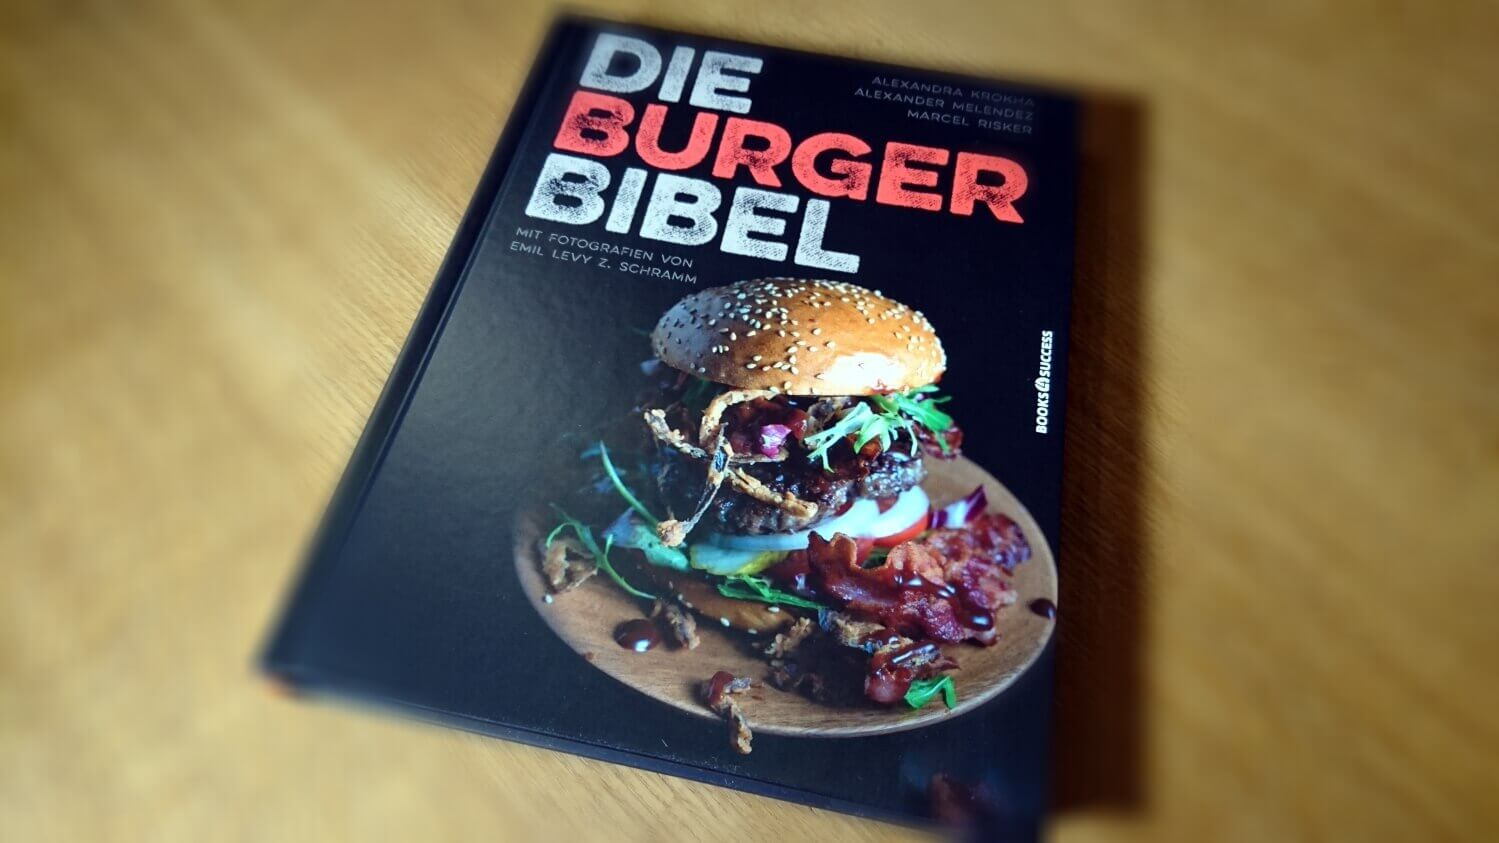 Die Burger Bibel Burger City Guide [object object]_Die Burger Bibel Burger City Guide